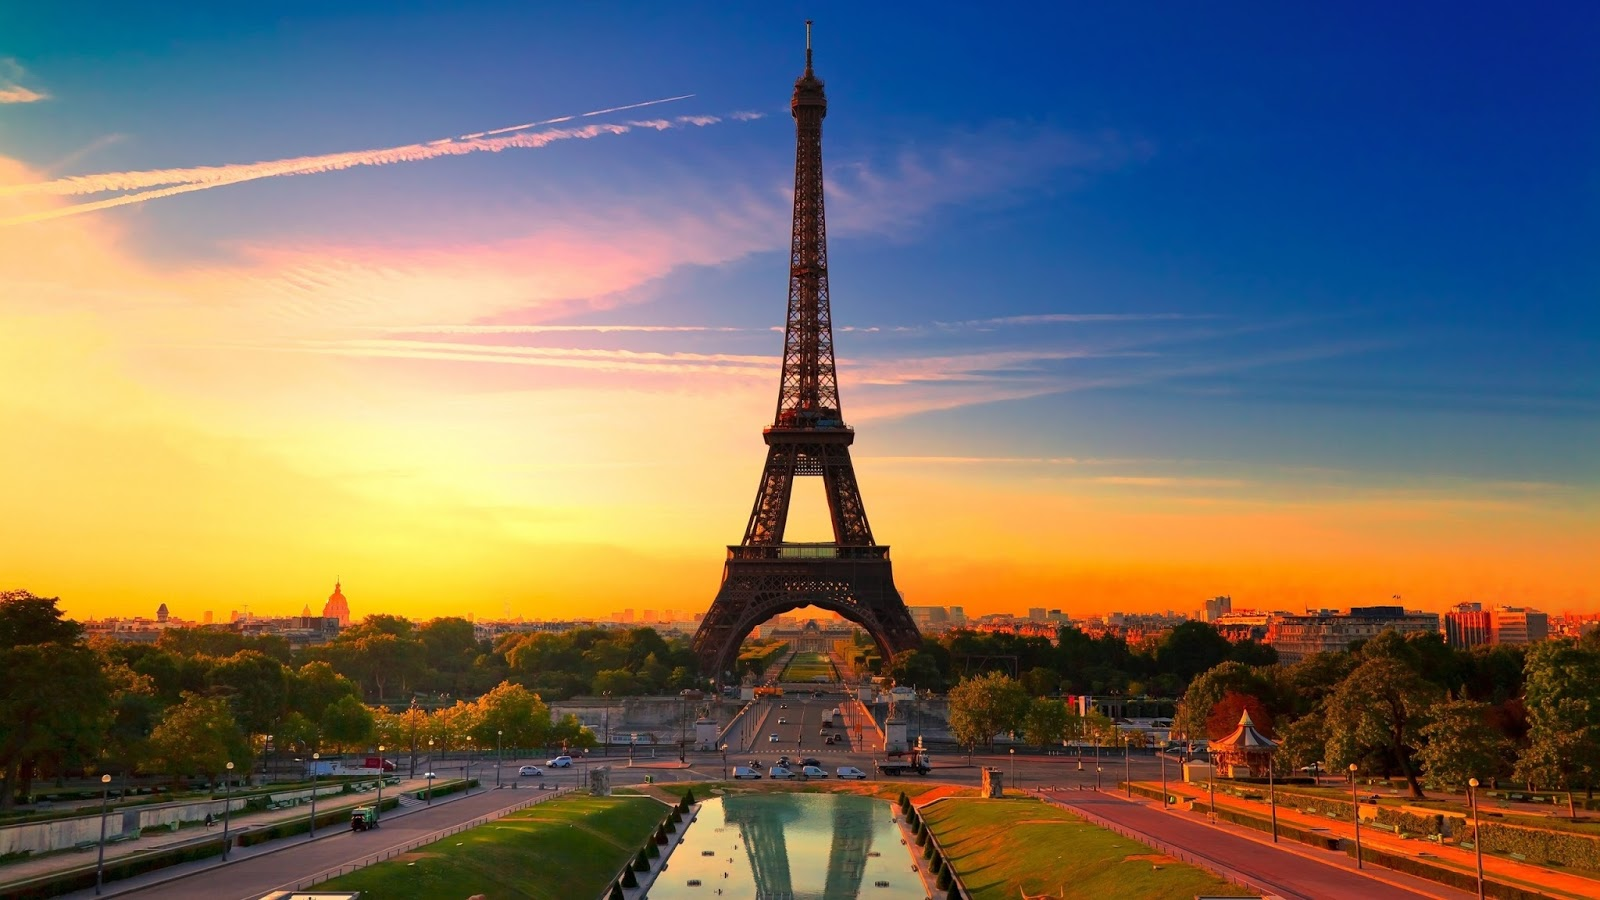 Random Facts About The Eiffel Tower